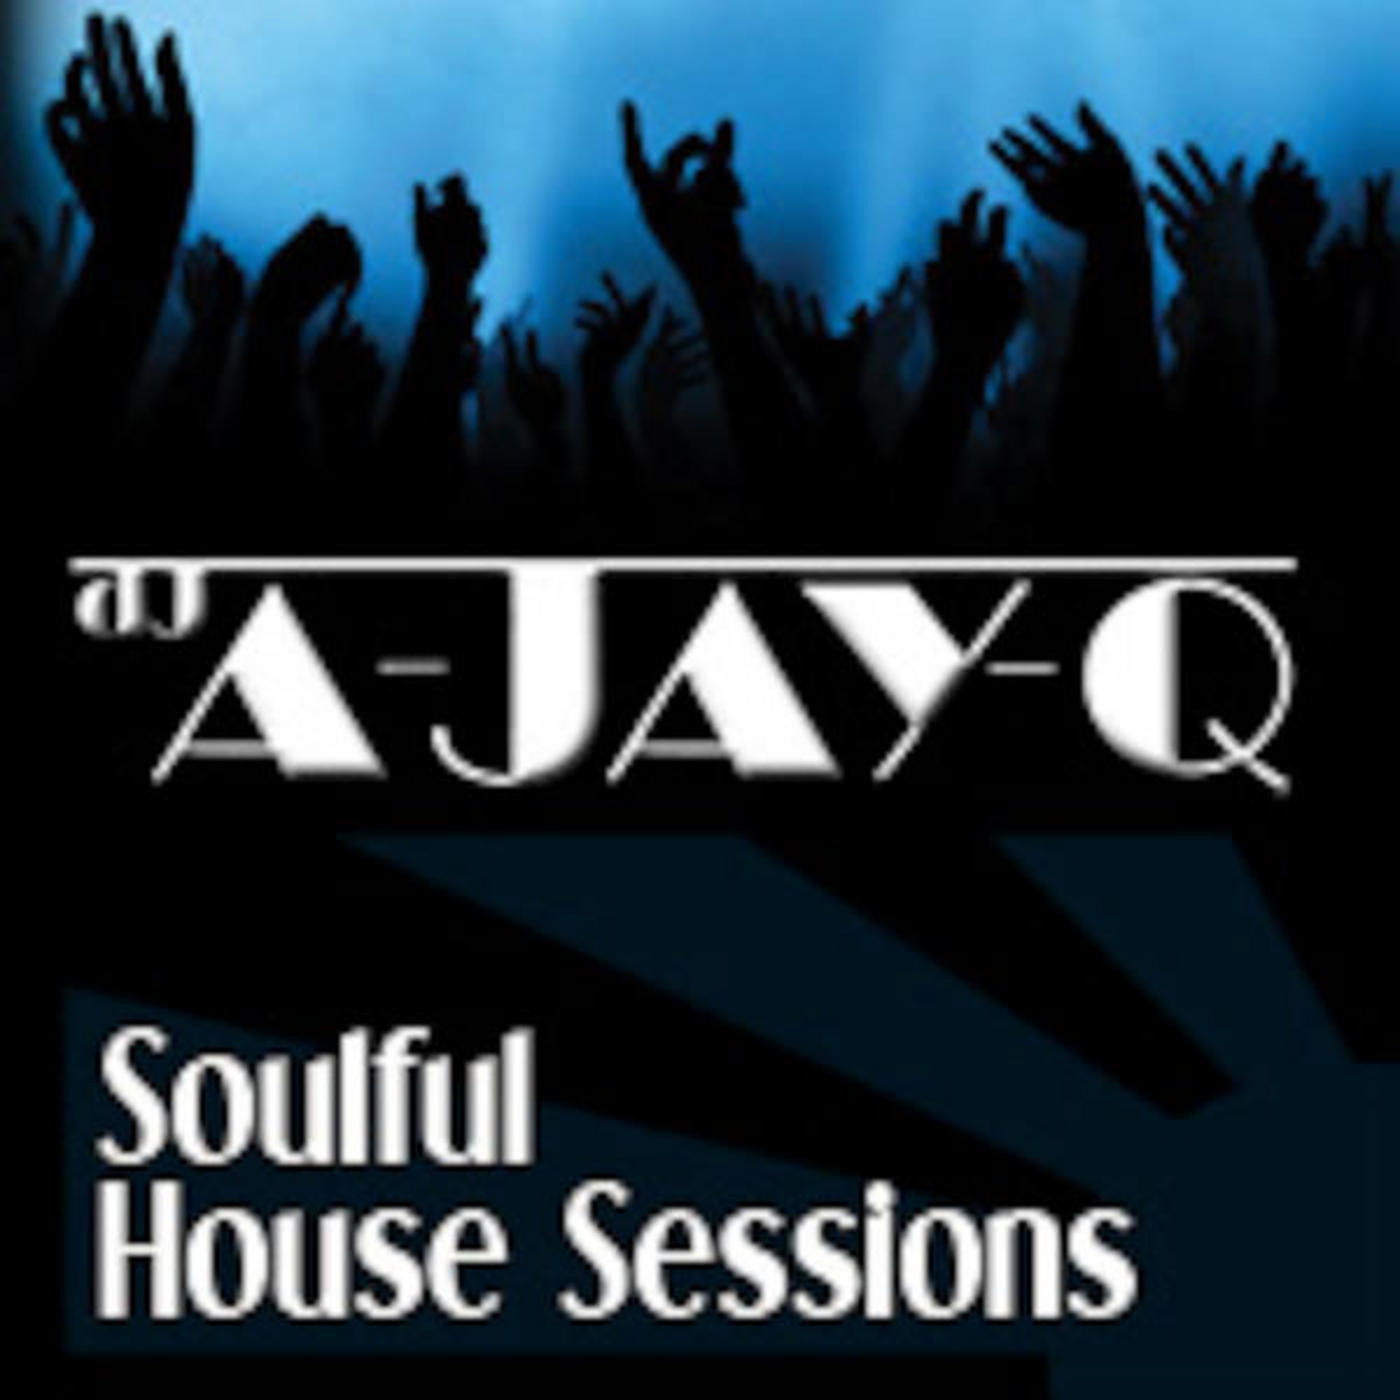 :: 26-Oct-14: Soulful House Sessions on Point Blank FM ::